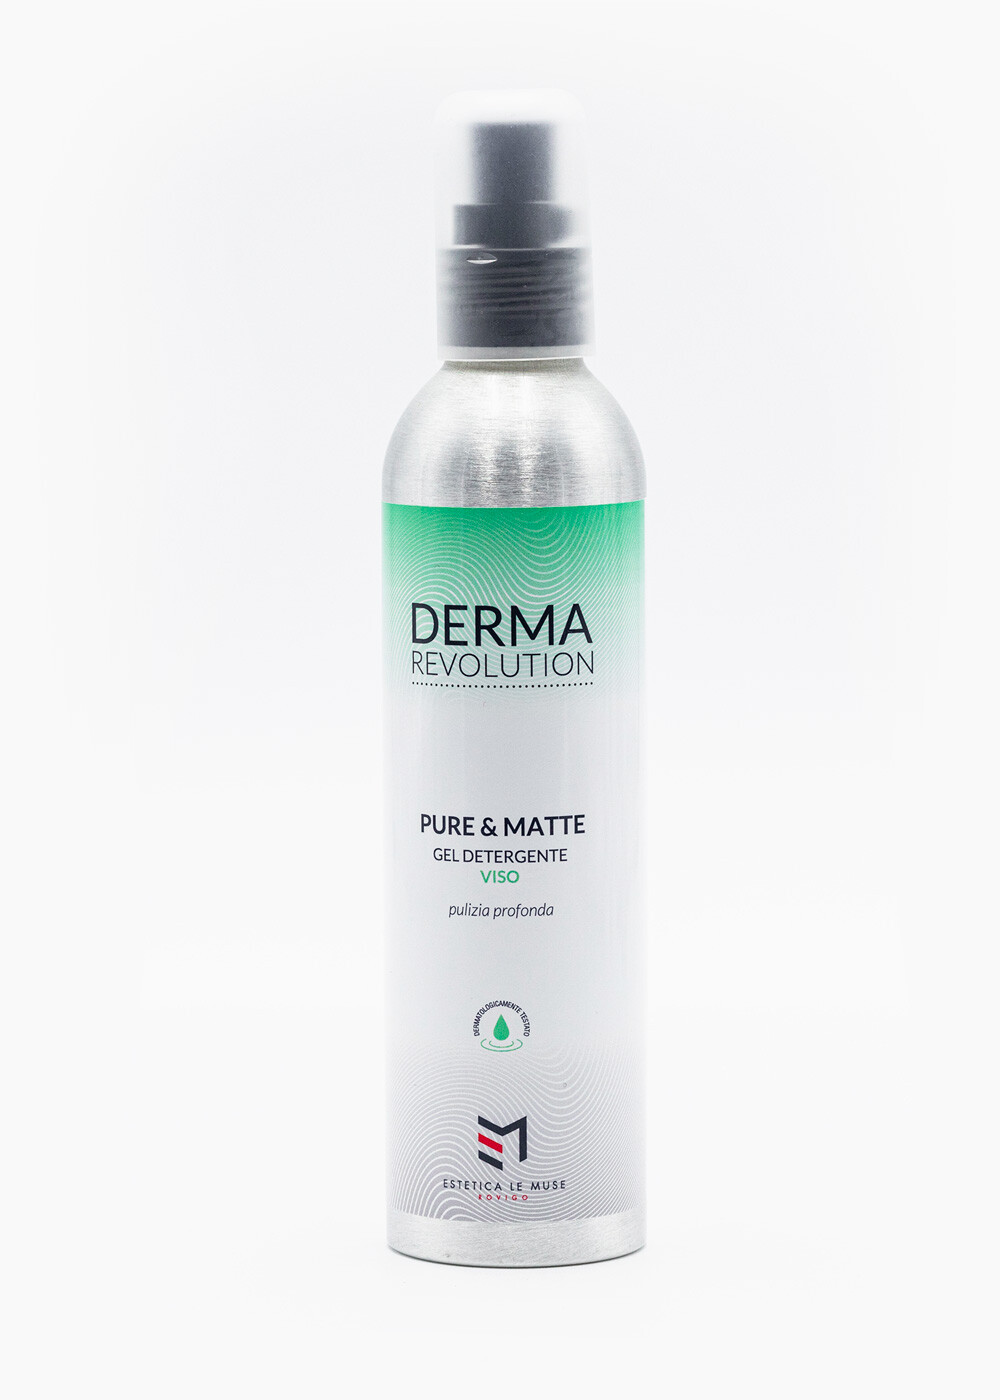 pure-and-matte-gel-detergente-viso-estetica-le-muse-first